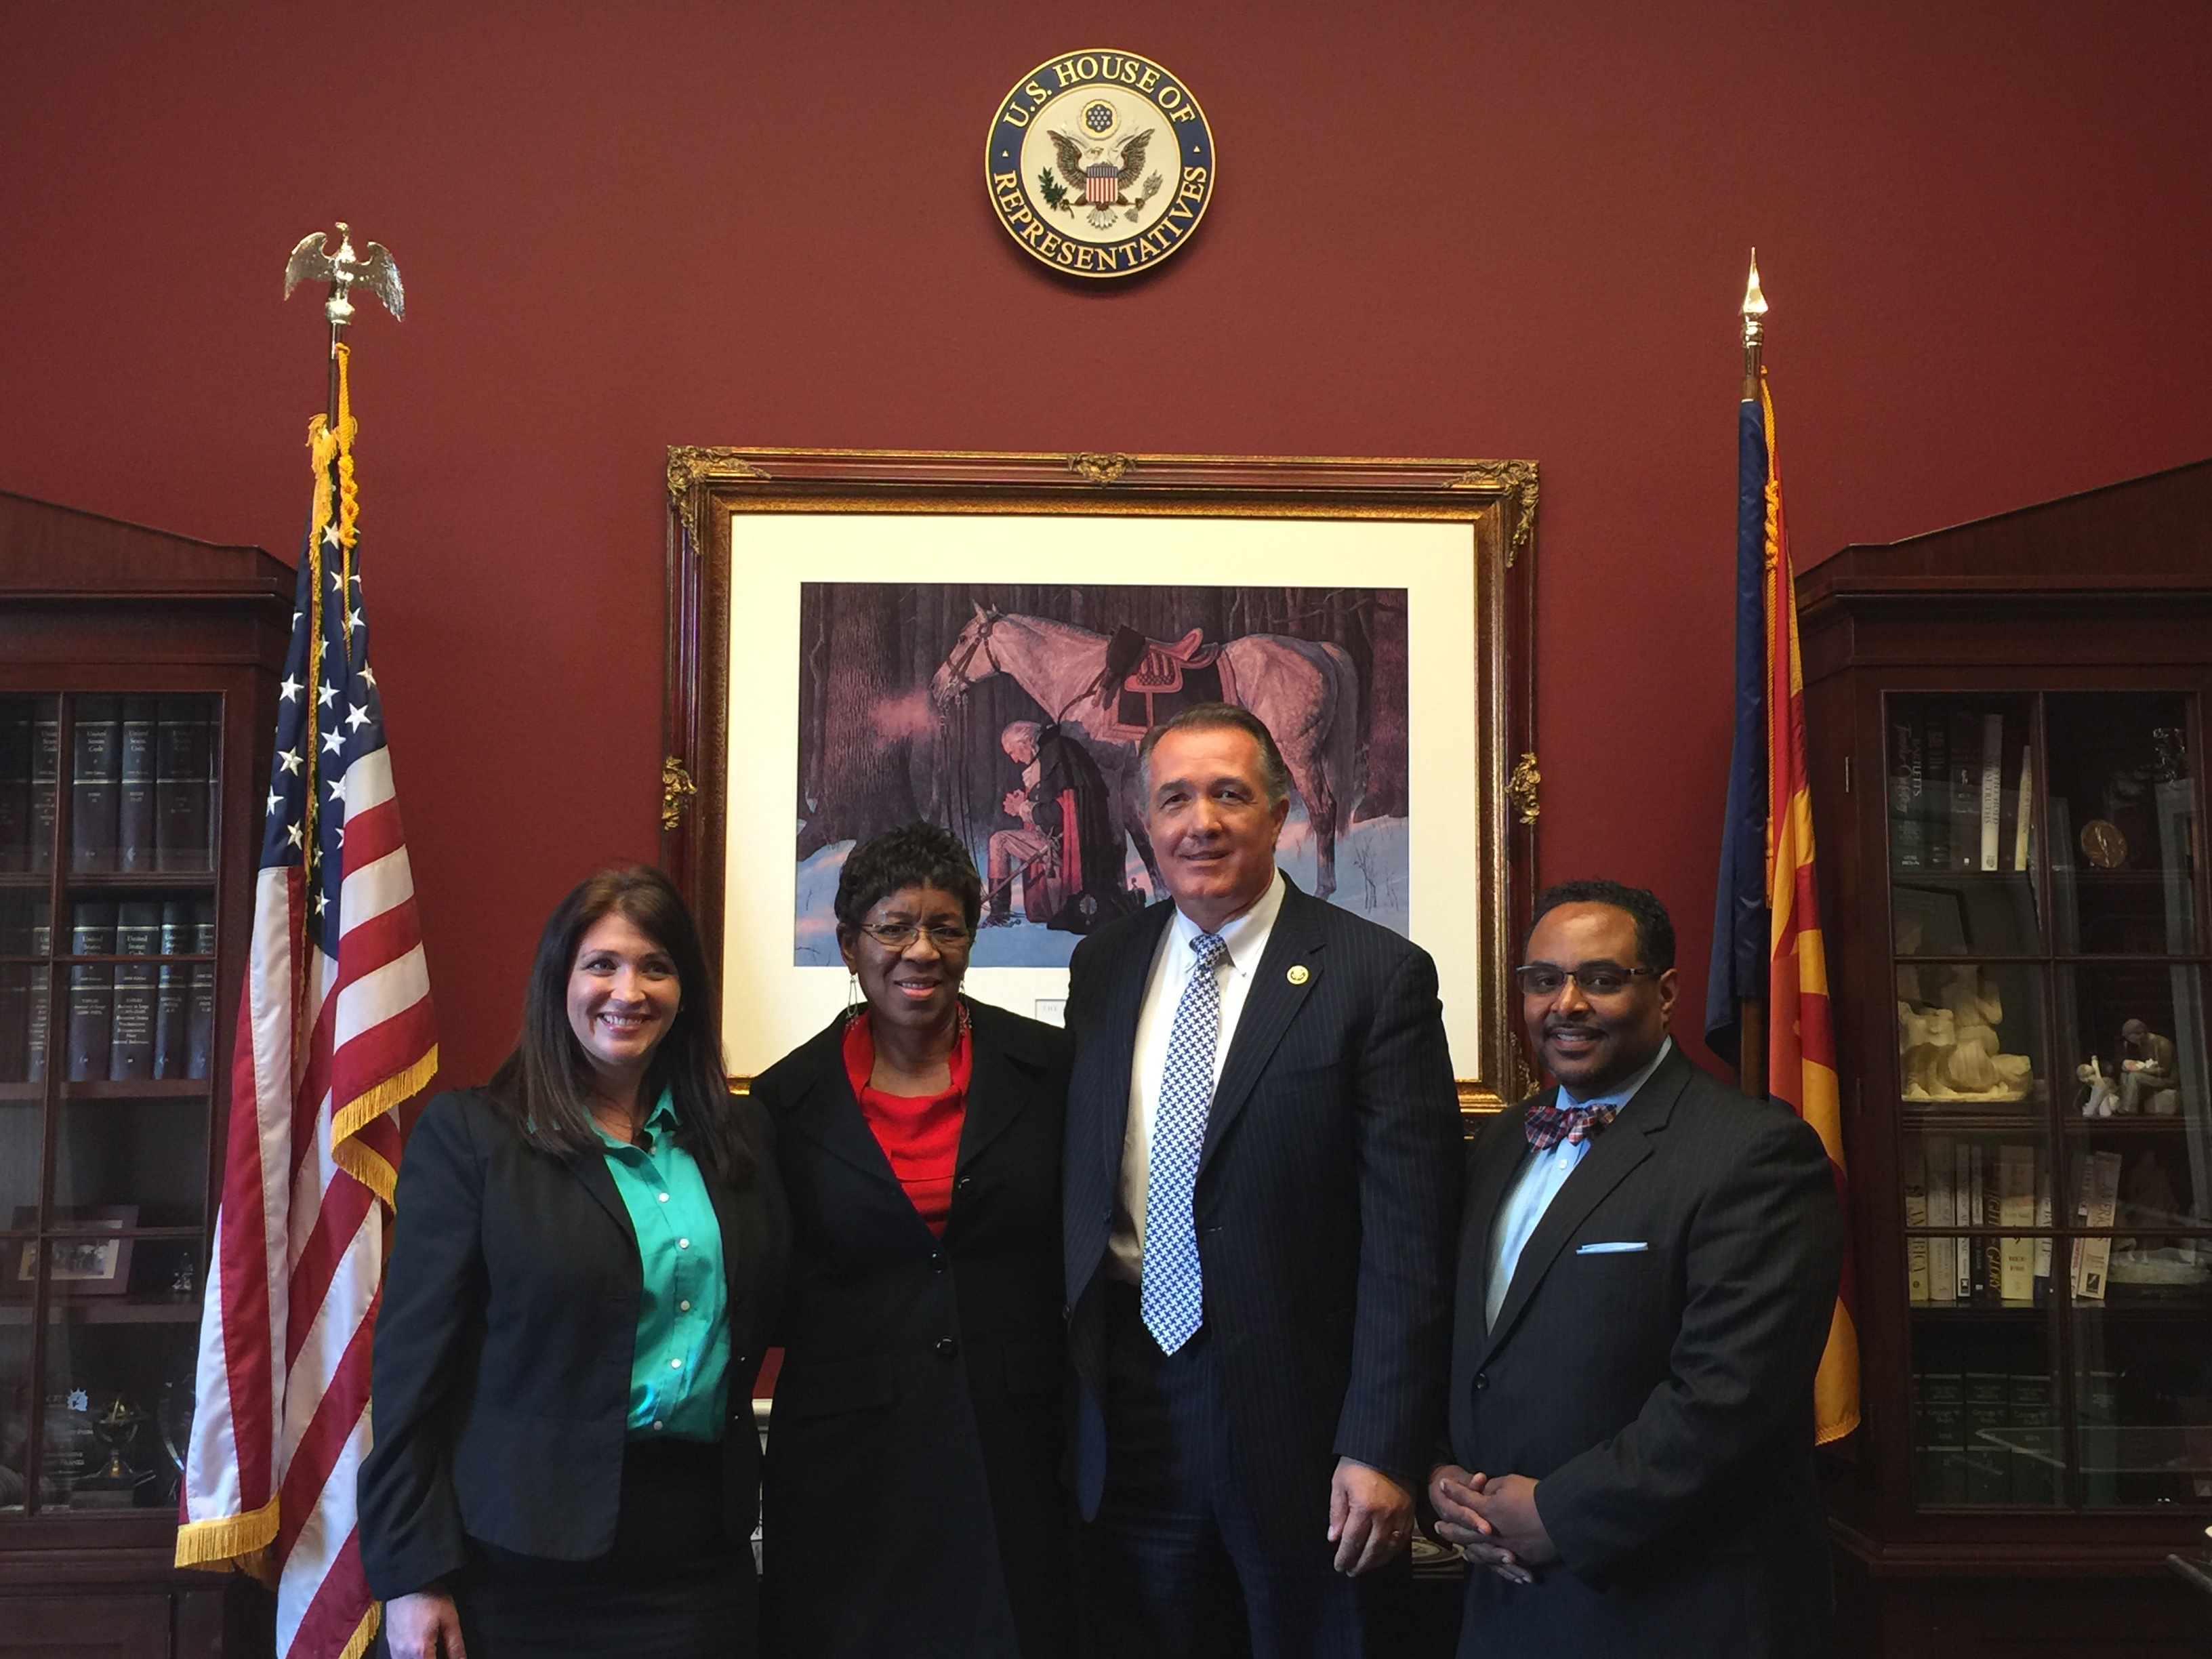 (Prolife witnesses after the hearing [L-R]: CLI Assoc. Scholar Anna Higgins, Catherine Davis [National Black Prolife Coalition; The Restoration Project], Rep. Trent Franks [R-AZ-8], and Rev. Derek McCoy [Center for Urban Renewal and Education])